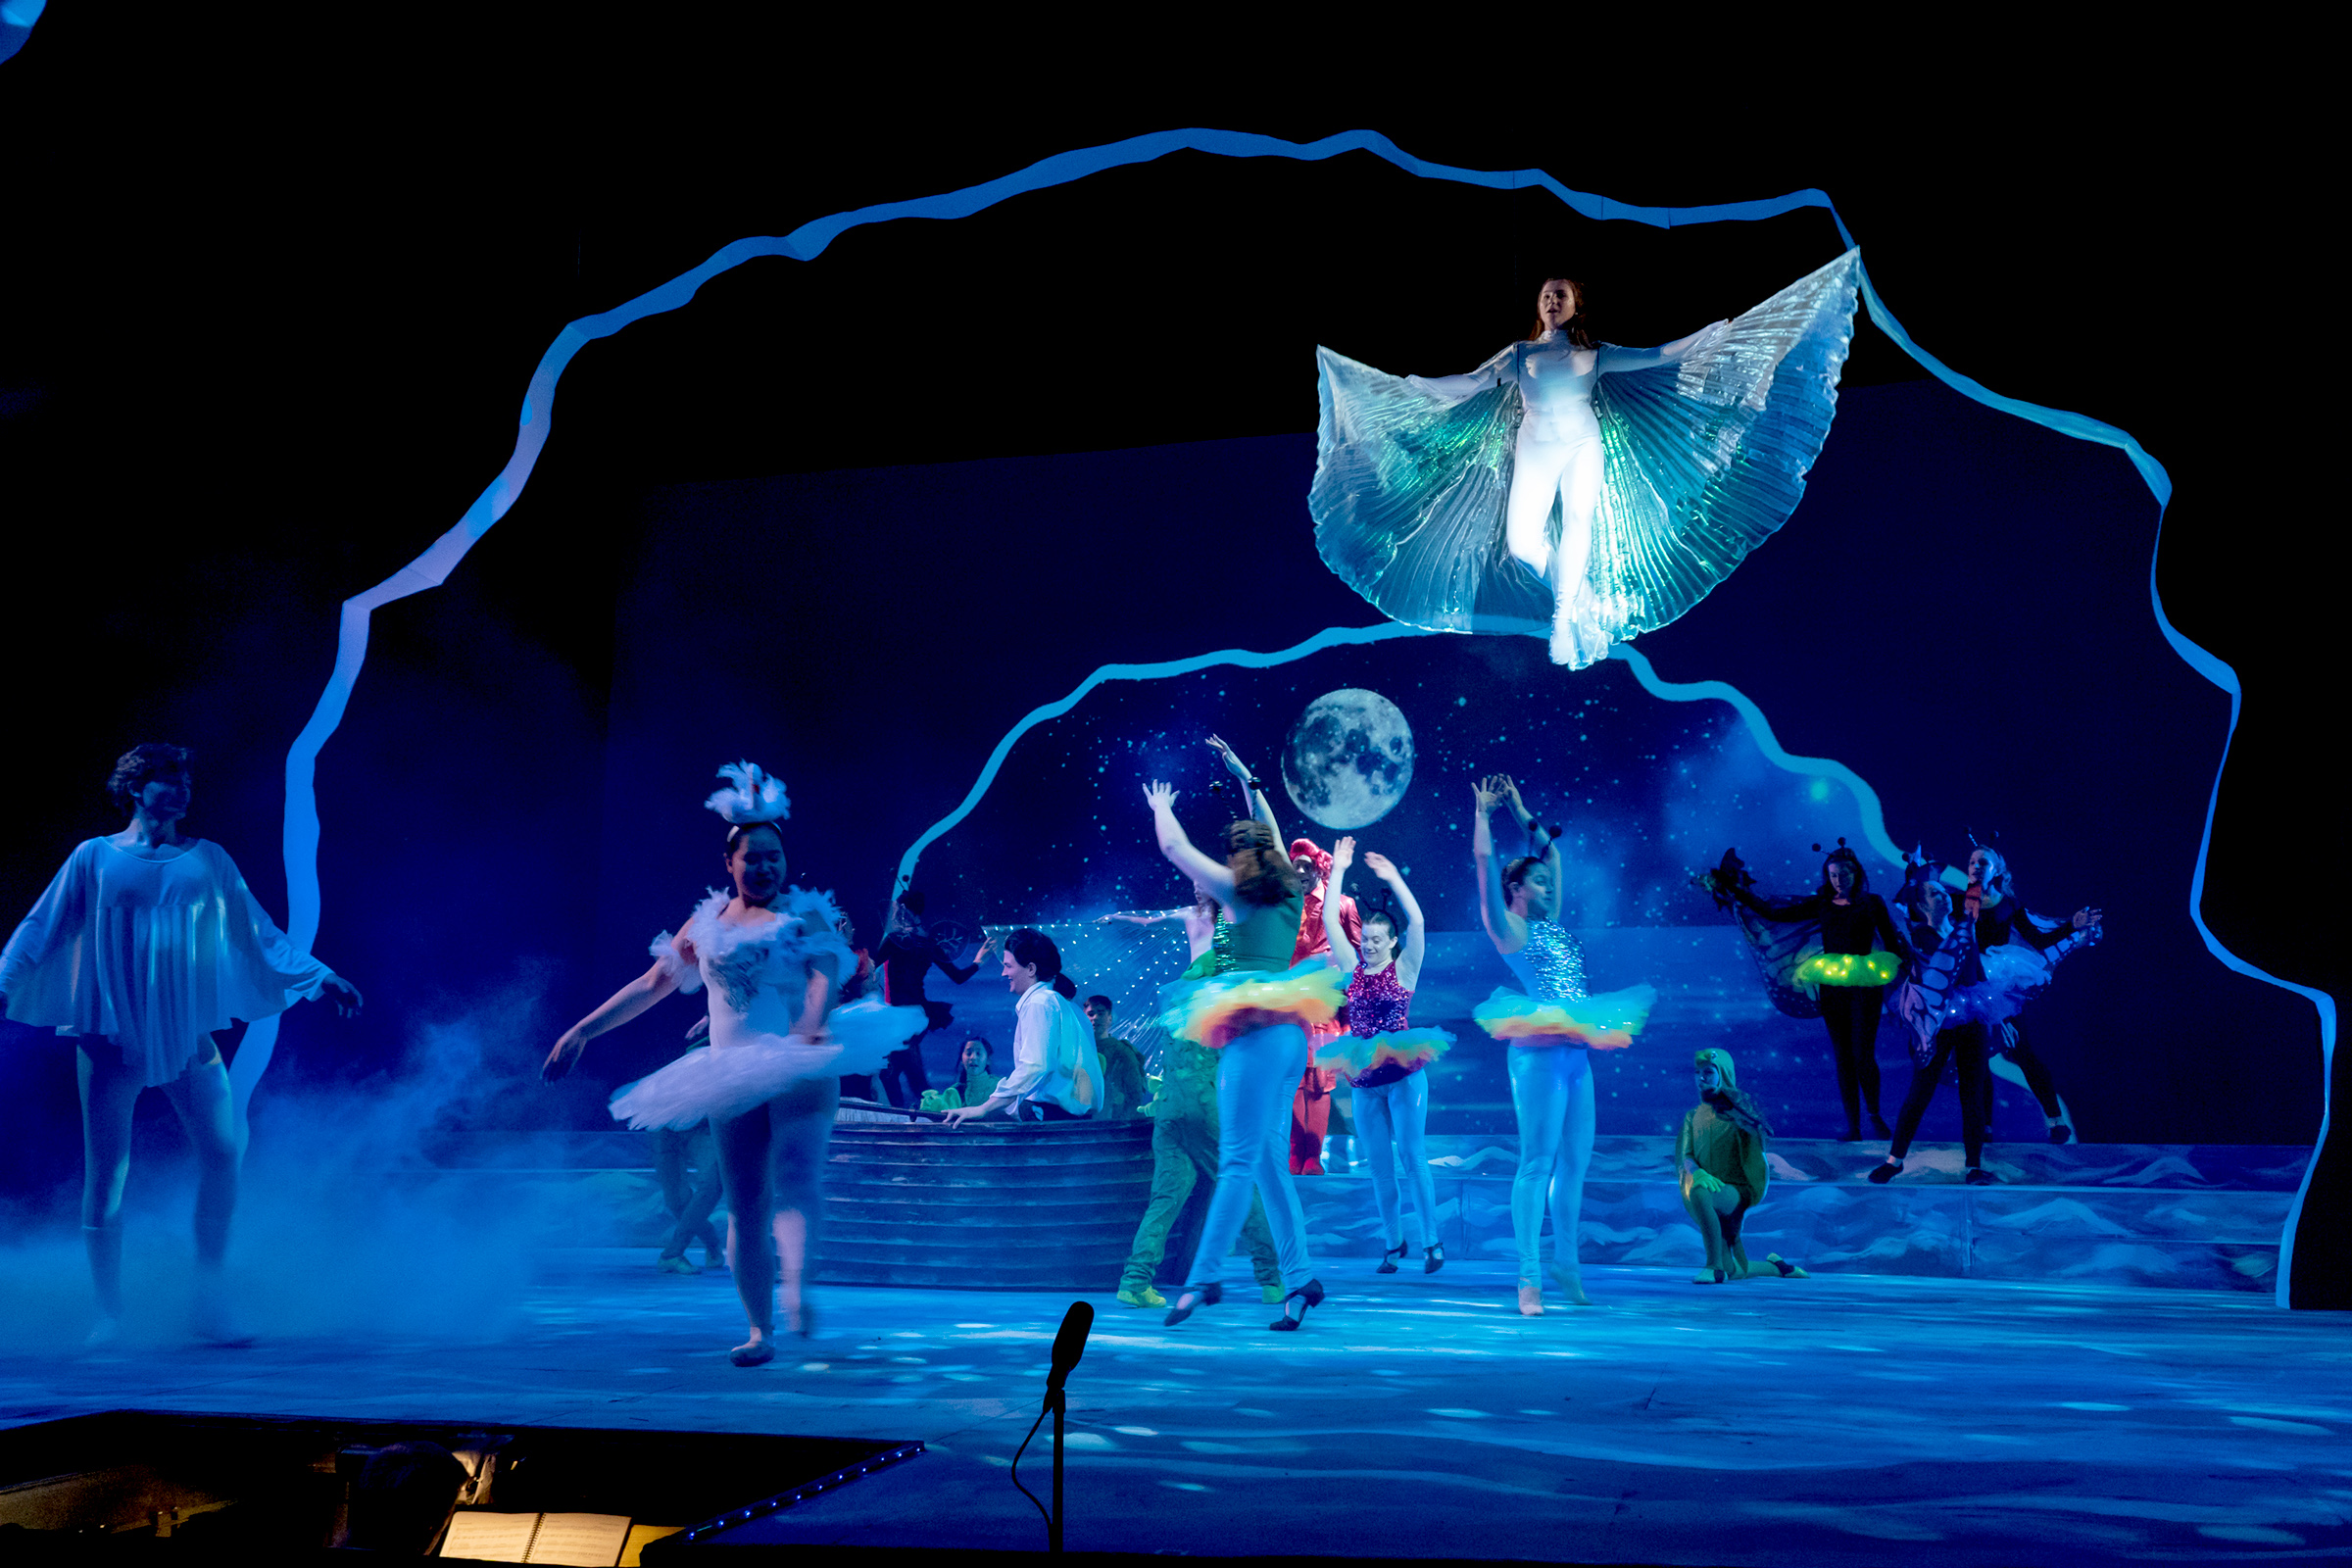 Making Projection Media for Disney's The Little Mermaid